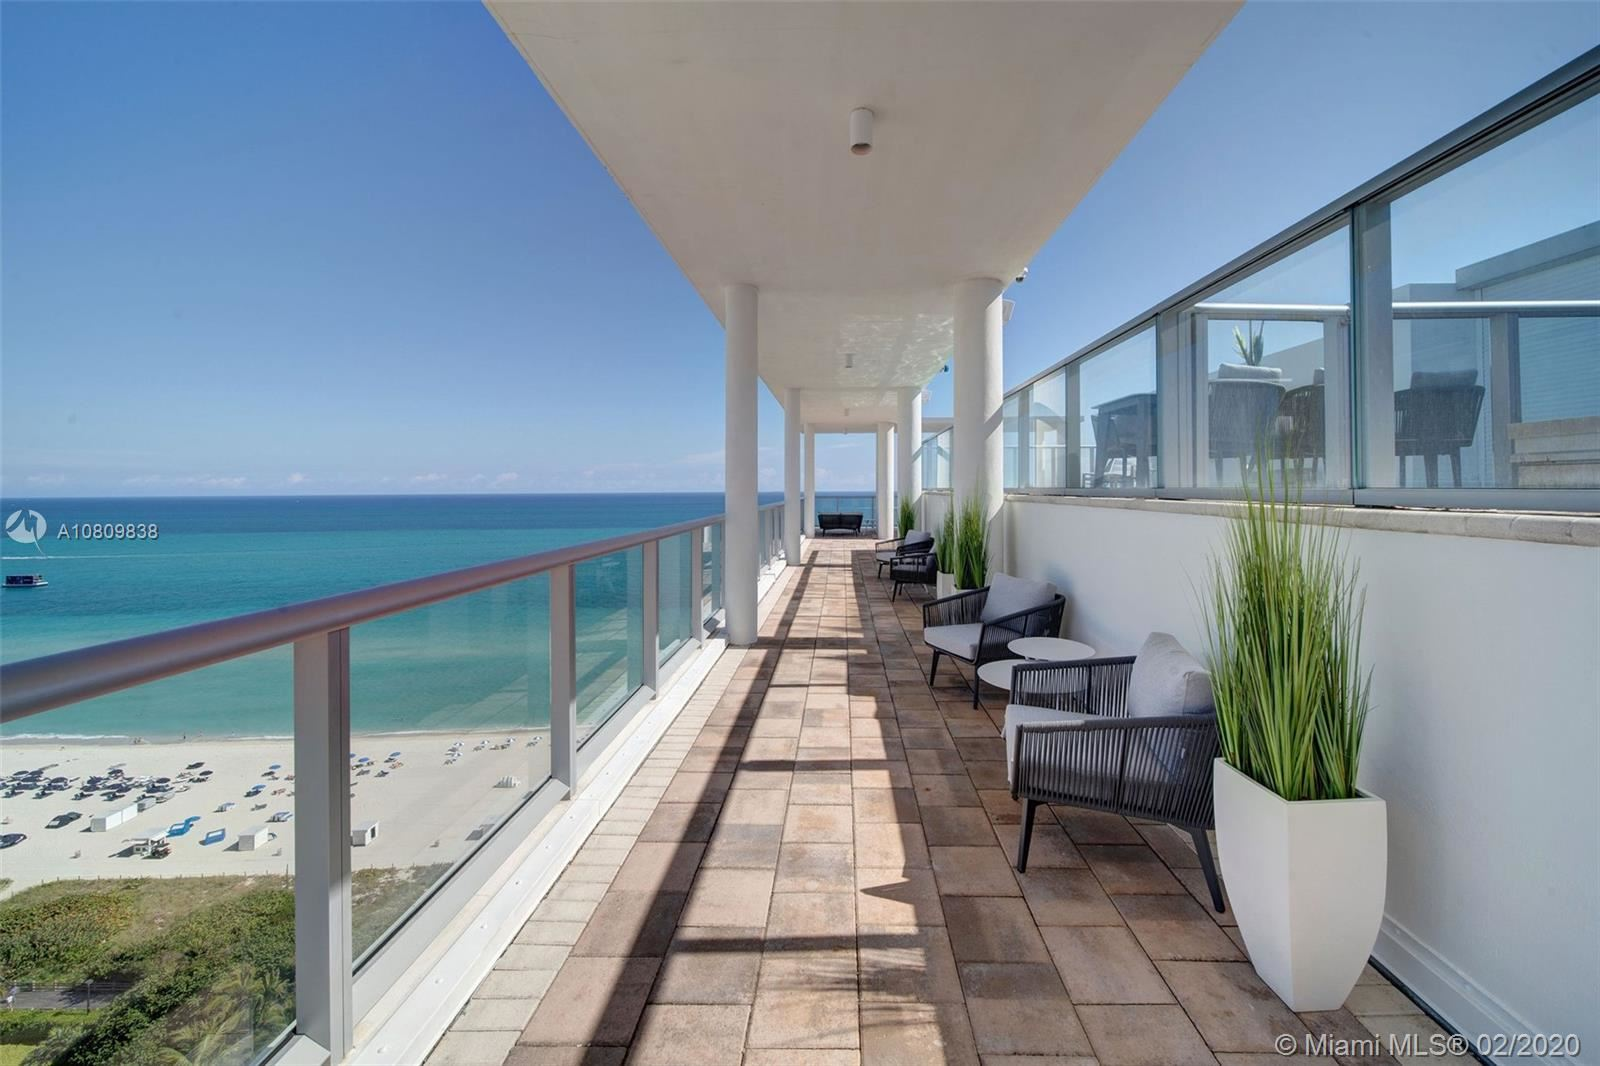 Photo 6 of Listing MLS a10809838 in 3737 Collins Ave #PH-4 Miami Beach FL 33140